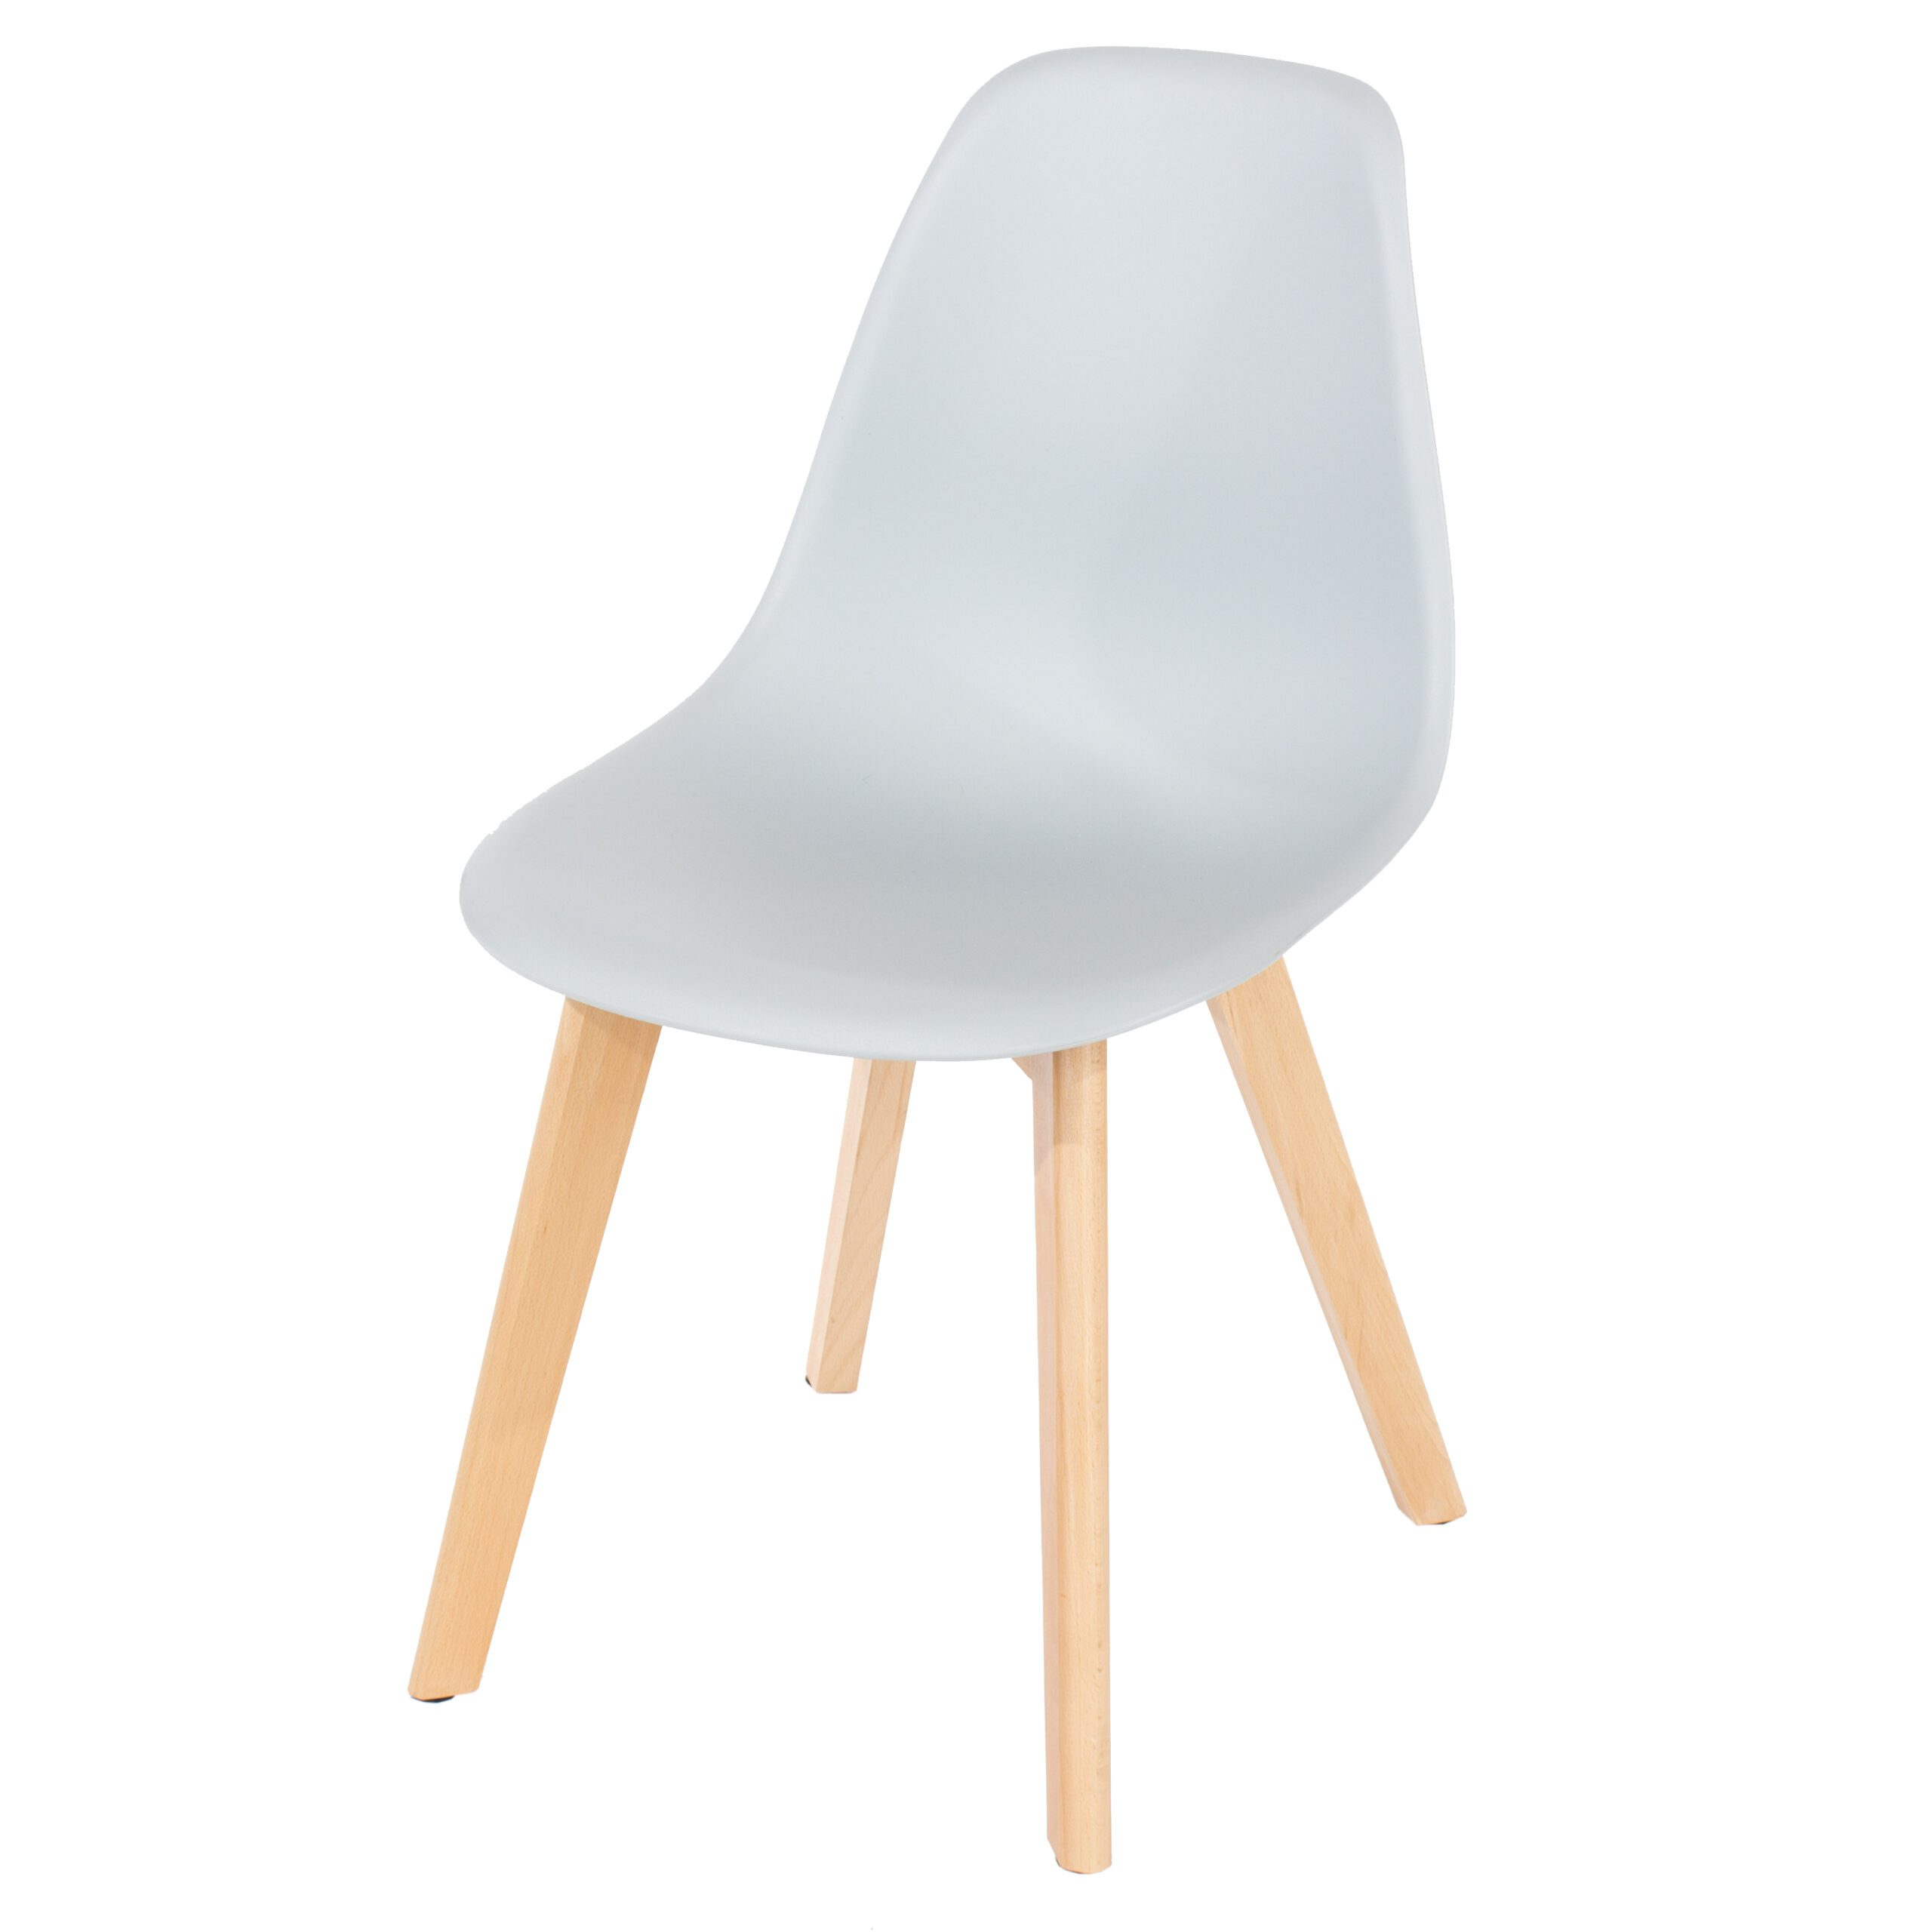 Penny grey plastic chairs with wood legs (pair)